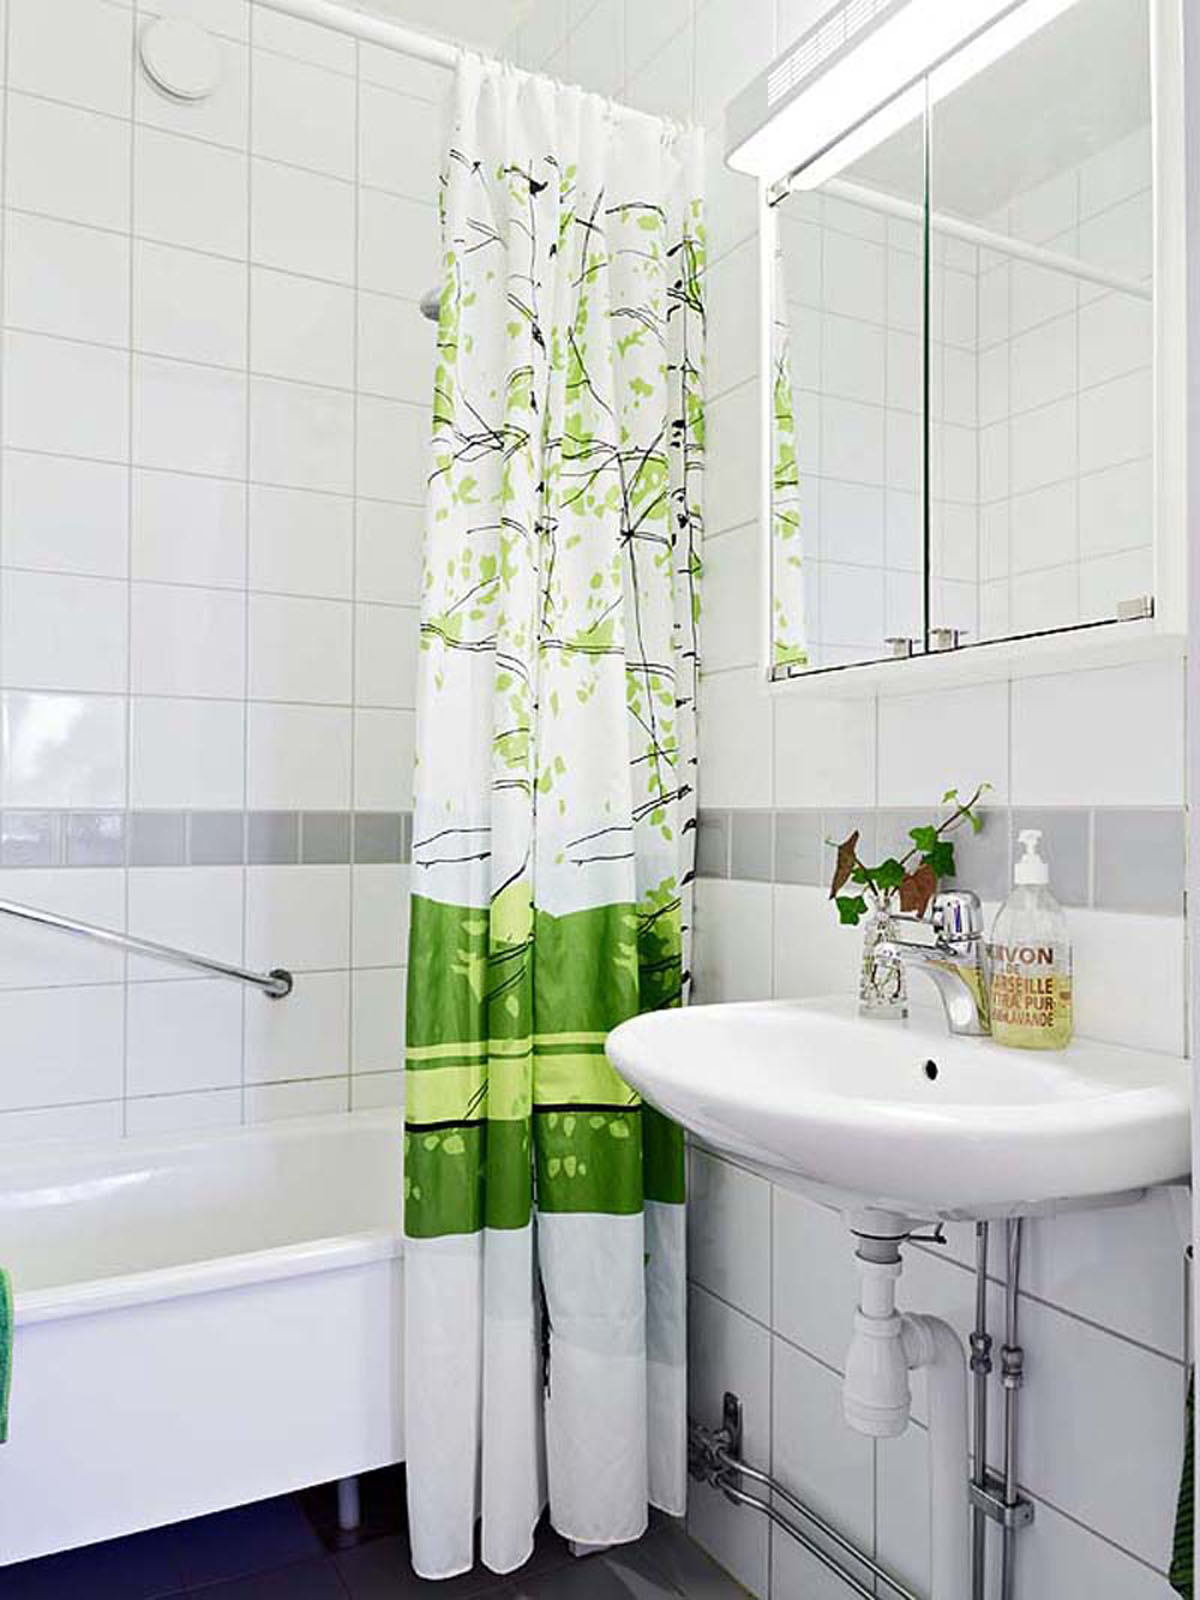 curtain shower anonymous paint hobby blog shelves and home more accessories lobby kohls depot for pin your ikea bathroom find ideas towels decoration decor decorative gray